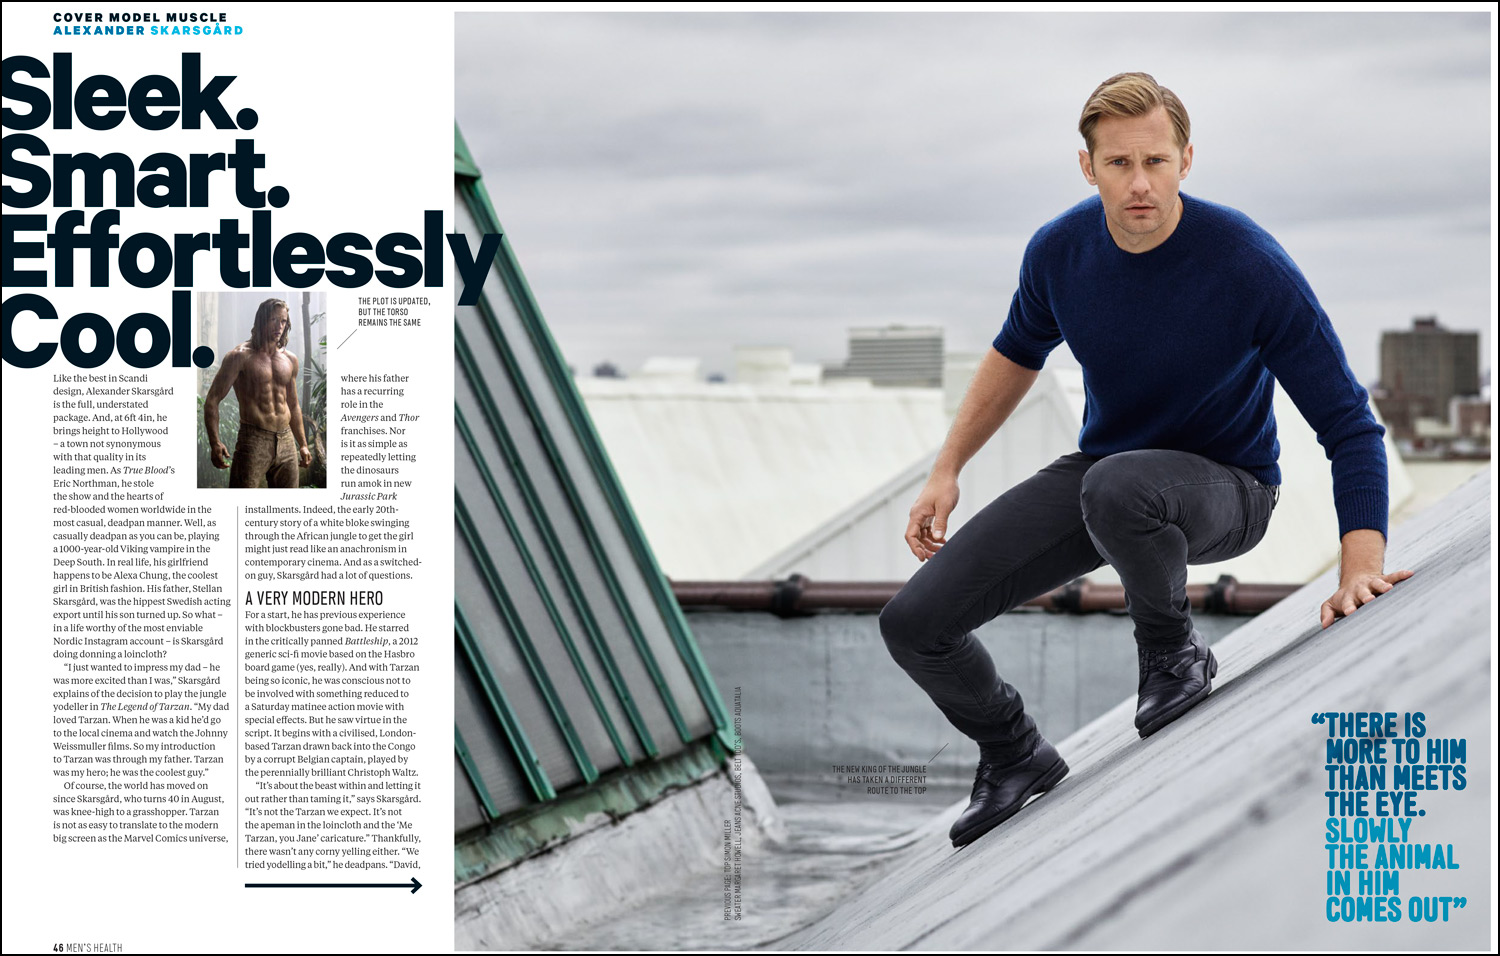 Cover Model Muscle_ Alexander Skarsgard_pdf_spread-2